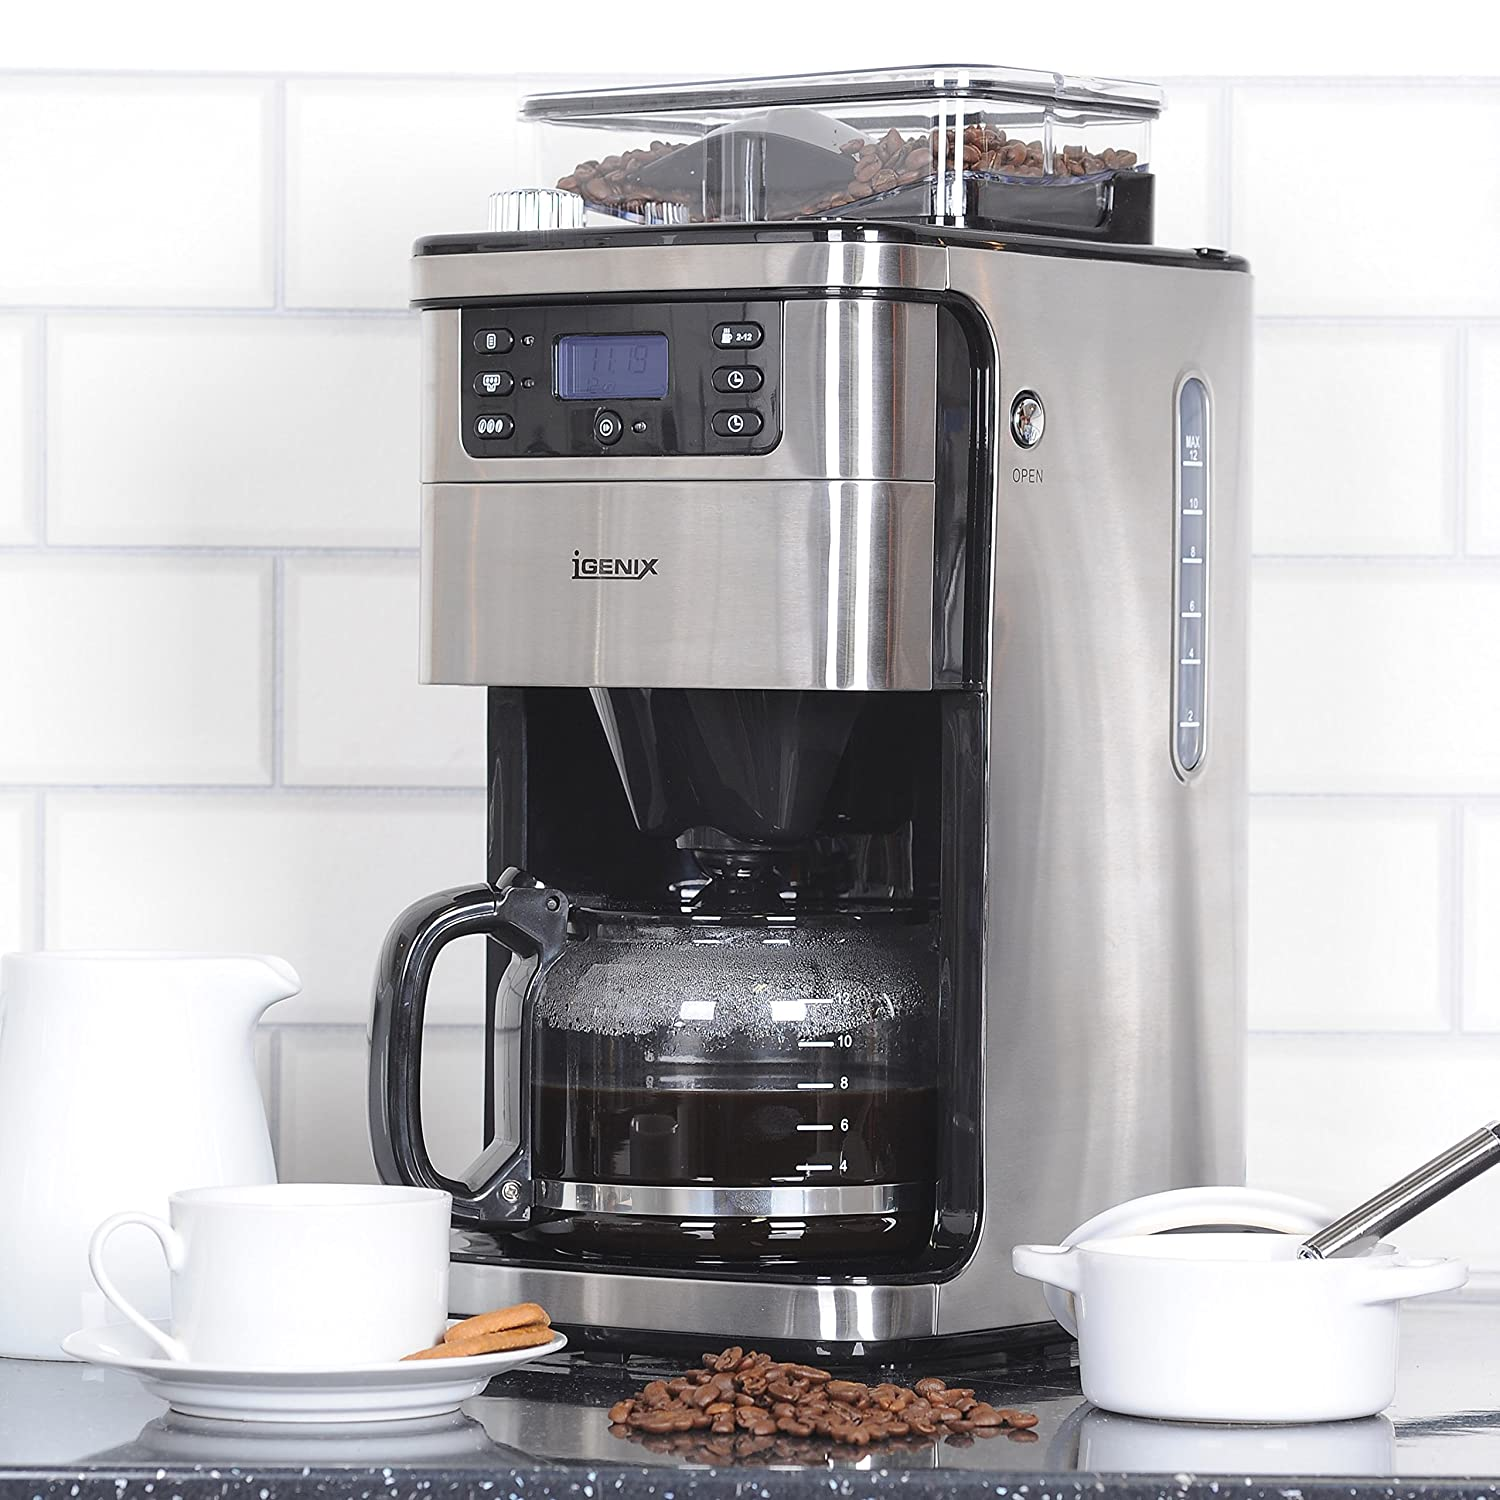 The Igenix IG8225 Bean to Cup Coffee Maker features a 12 cup 1.5 L capacity.